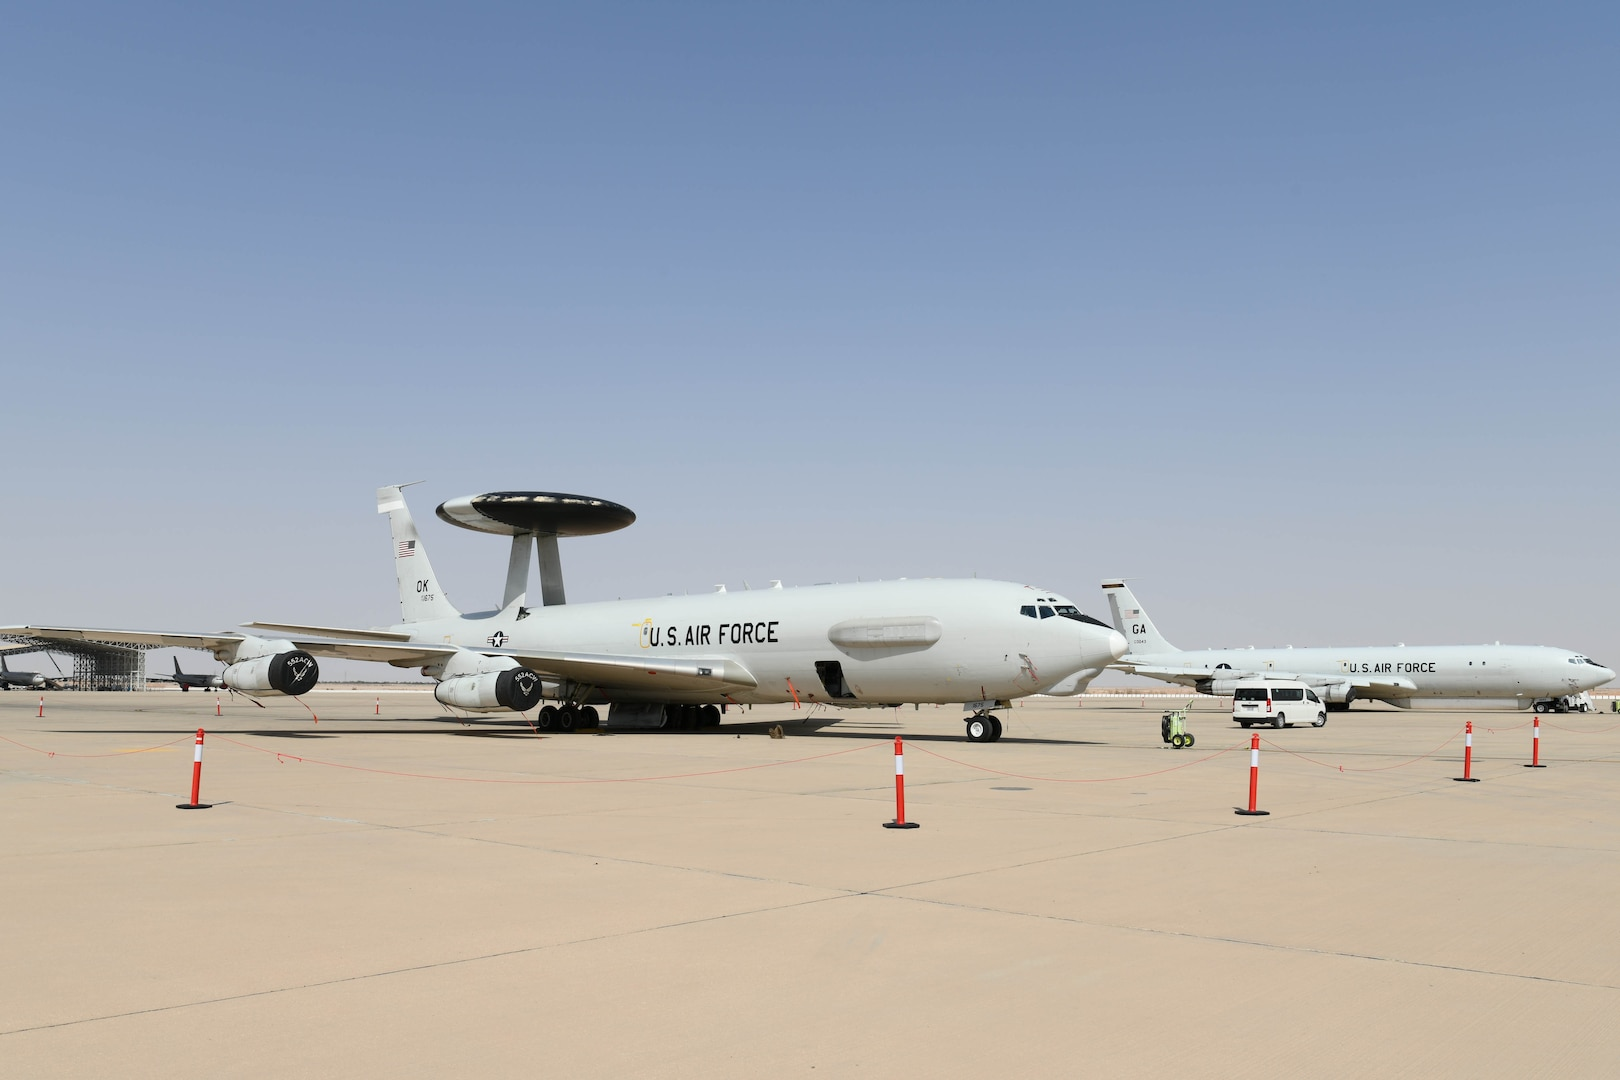 An E-3 Sentry (AWACS) and E-8C Joint Surveillance Target Attack Radar System aircraft sit on the flightline at Prince Sultan Air Base, Kingdom of Saudi Arabia, March 1, 2021.